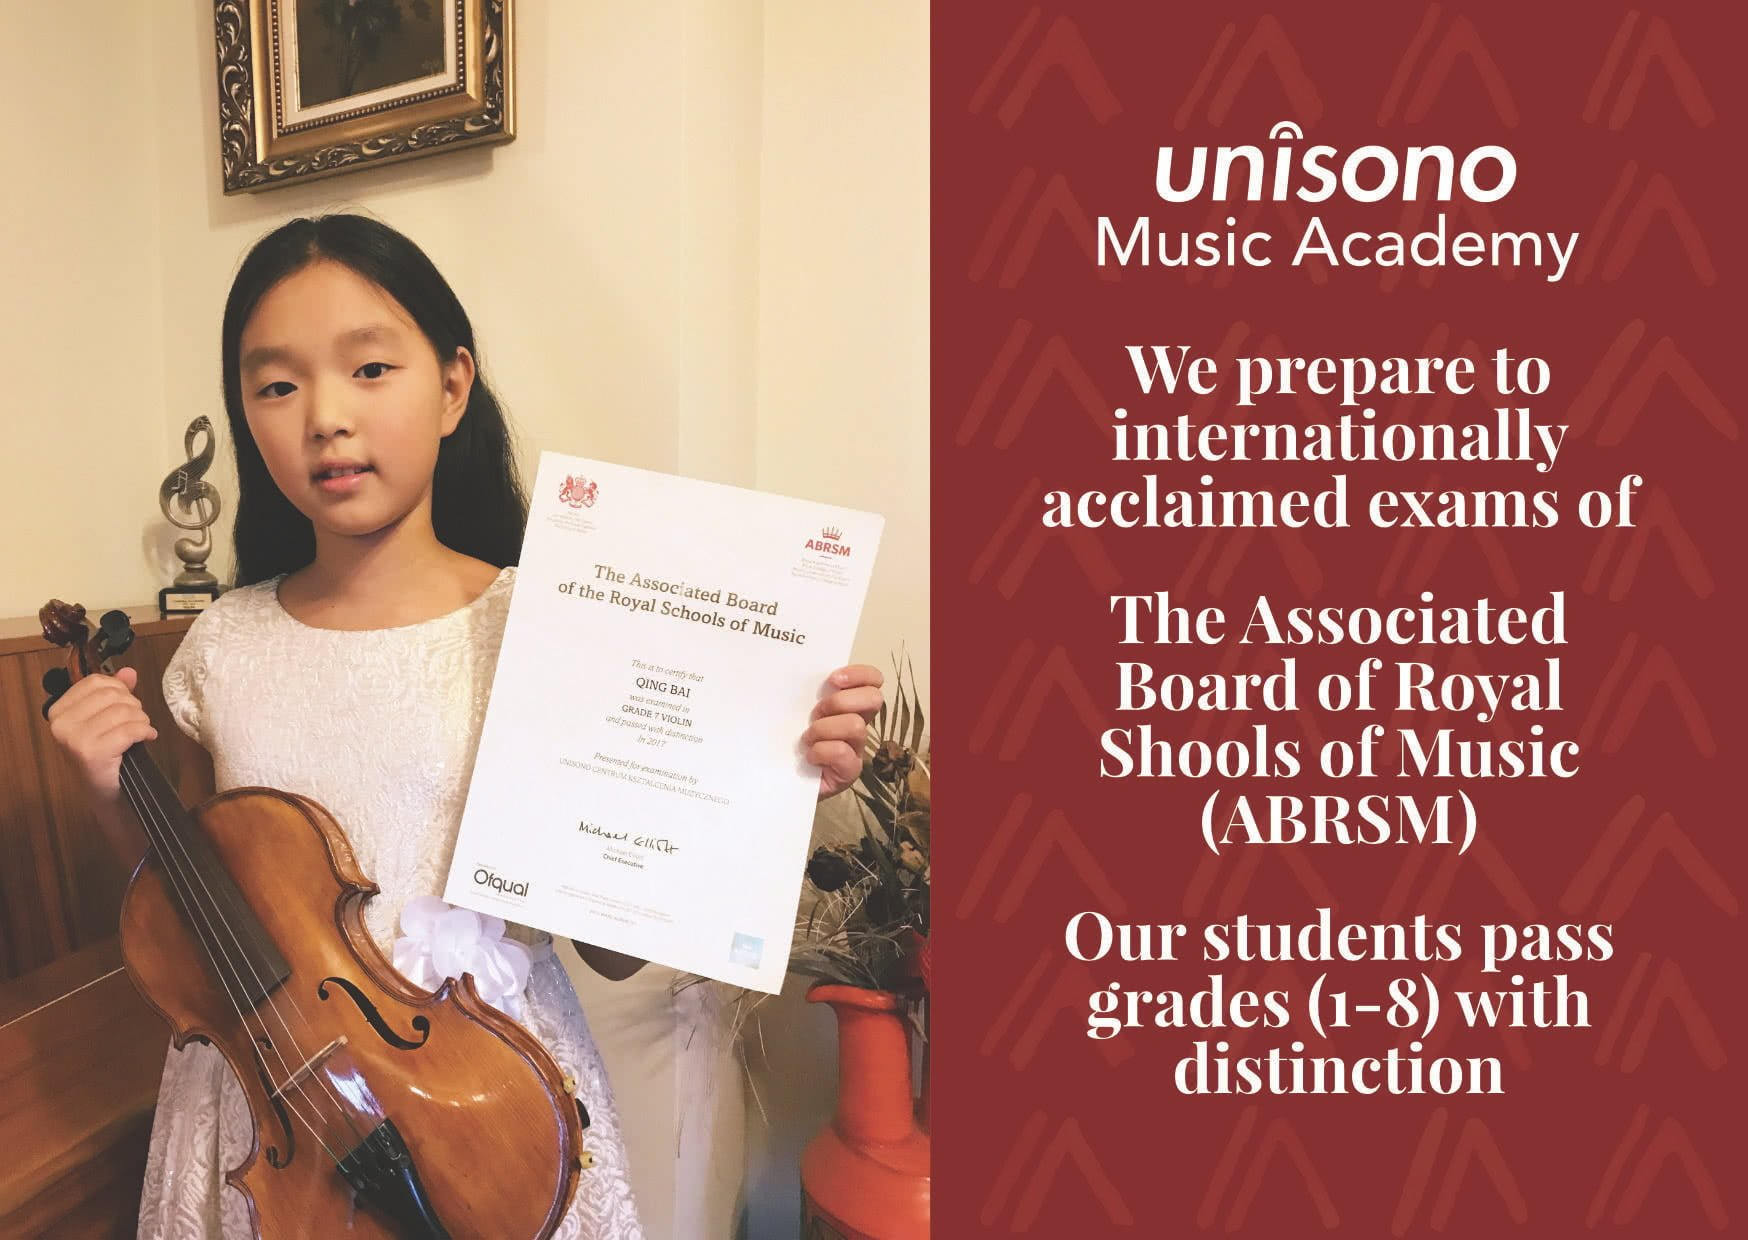 Our students pass ABRSM exams with distinction